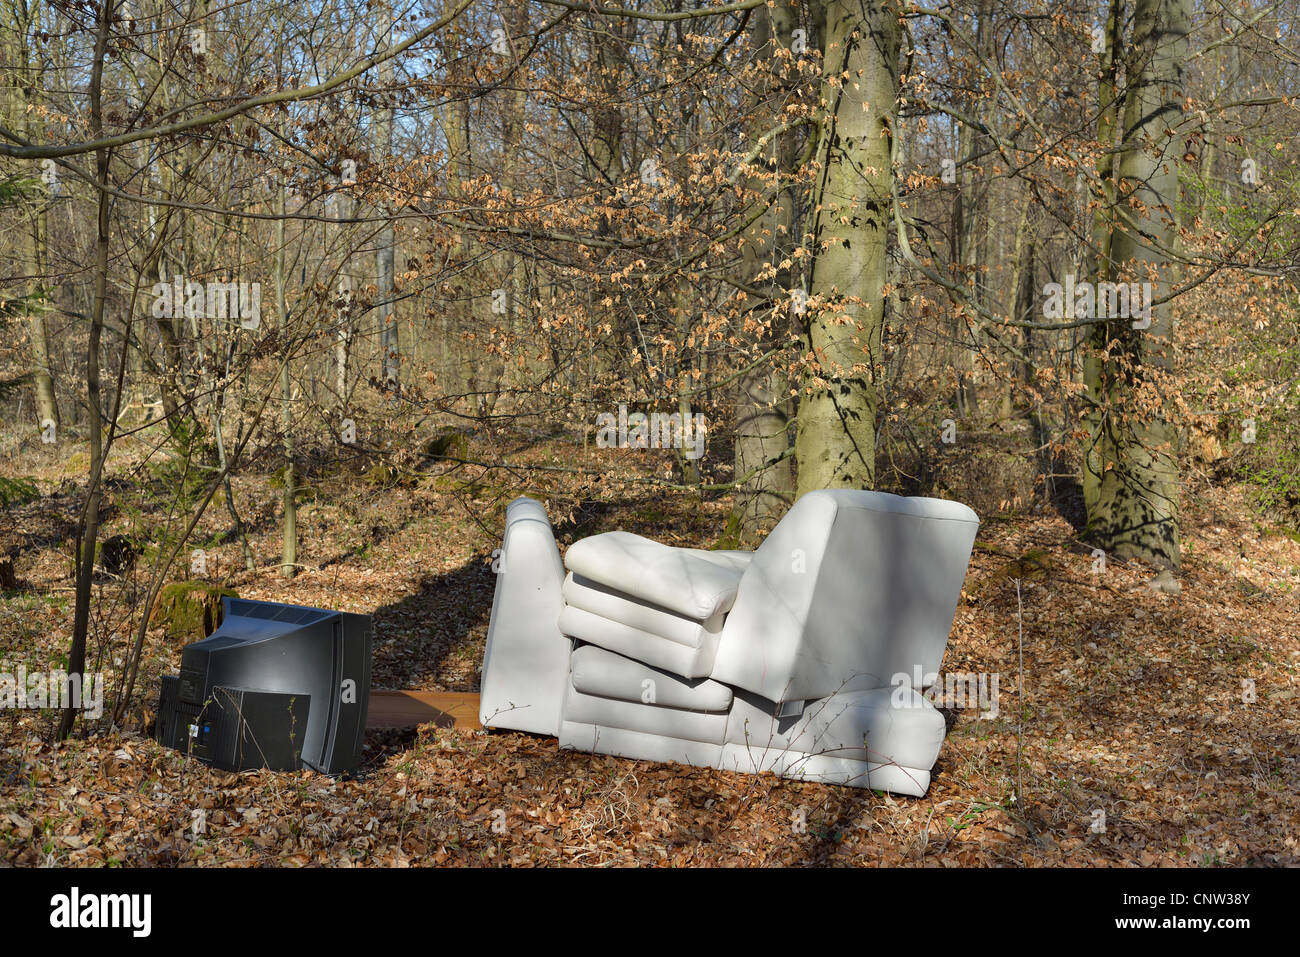 Illegal Rubbish Dump In The Forest - A White Couch And A Black TV Set  Standing In The Middle Of The Trees